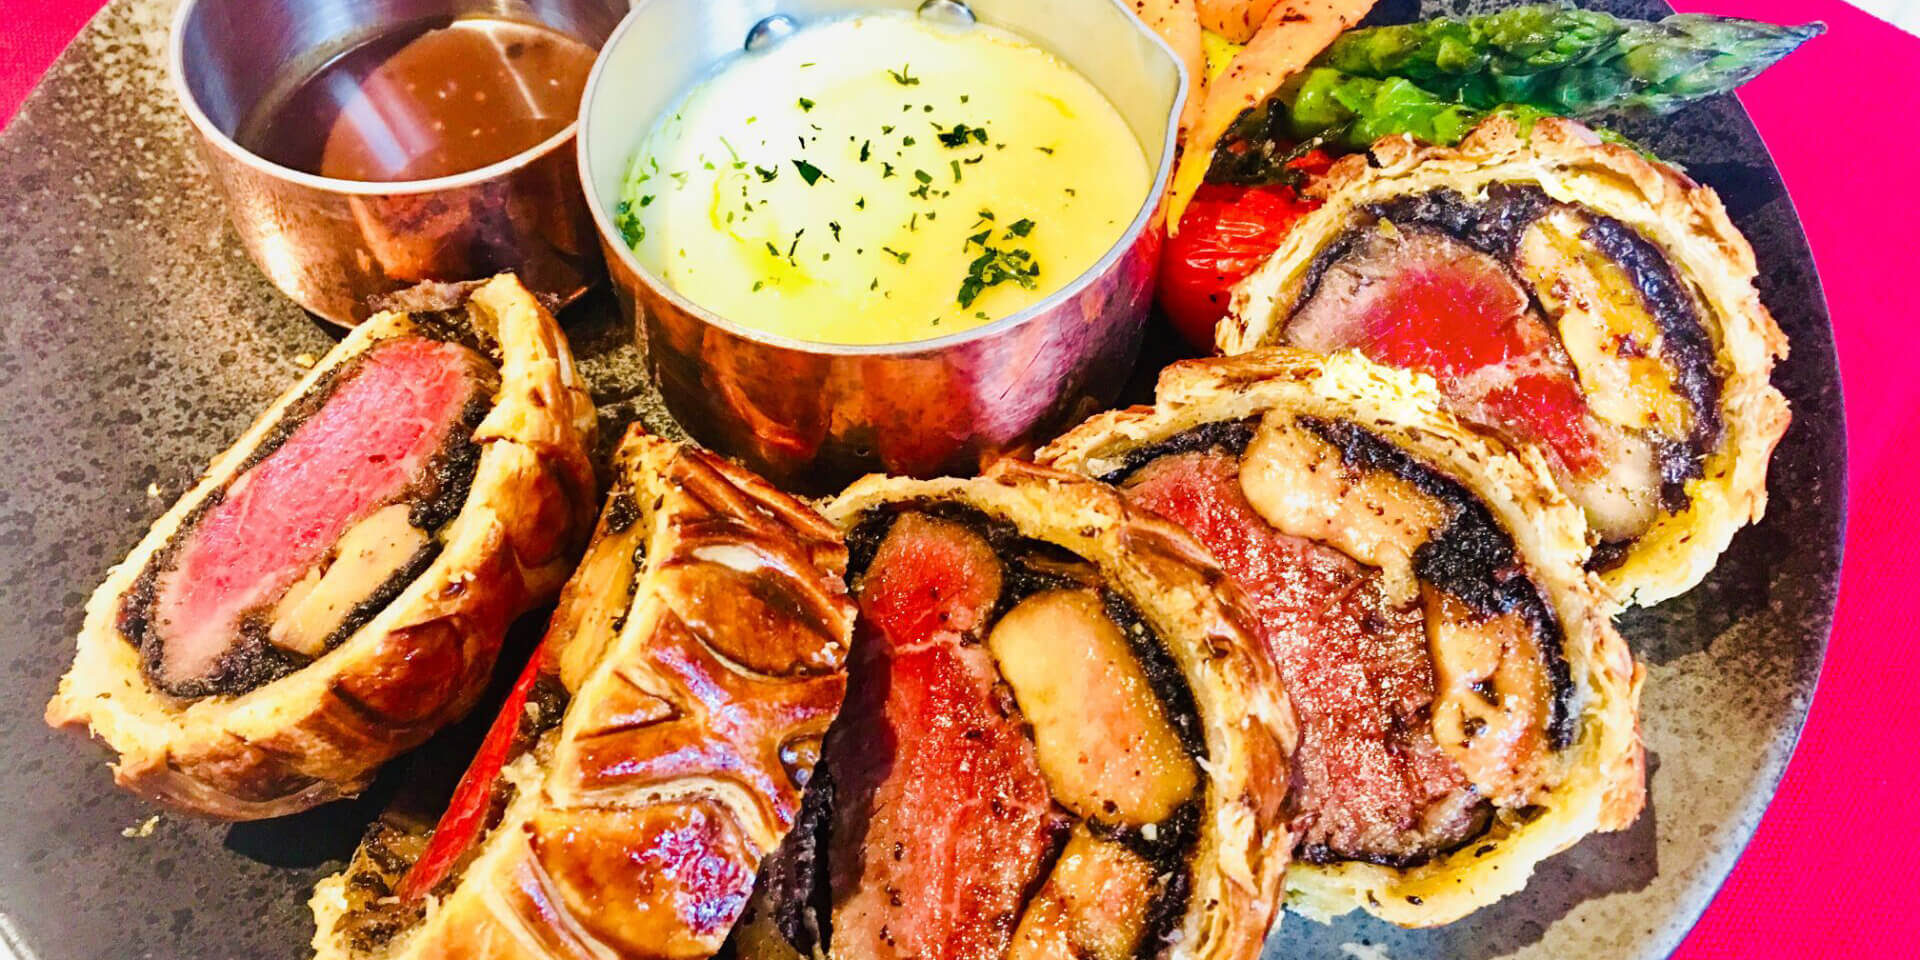 Australian Wagyu Wellington Beef Steak